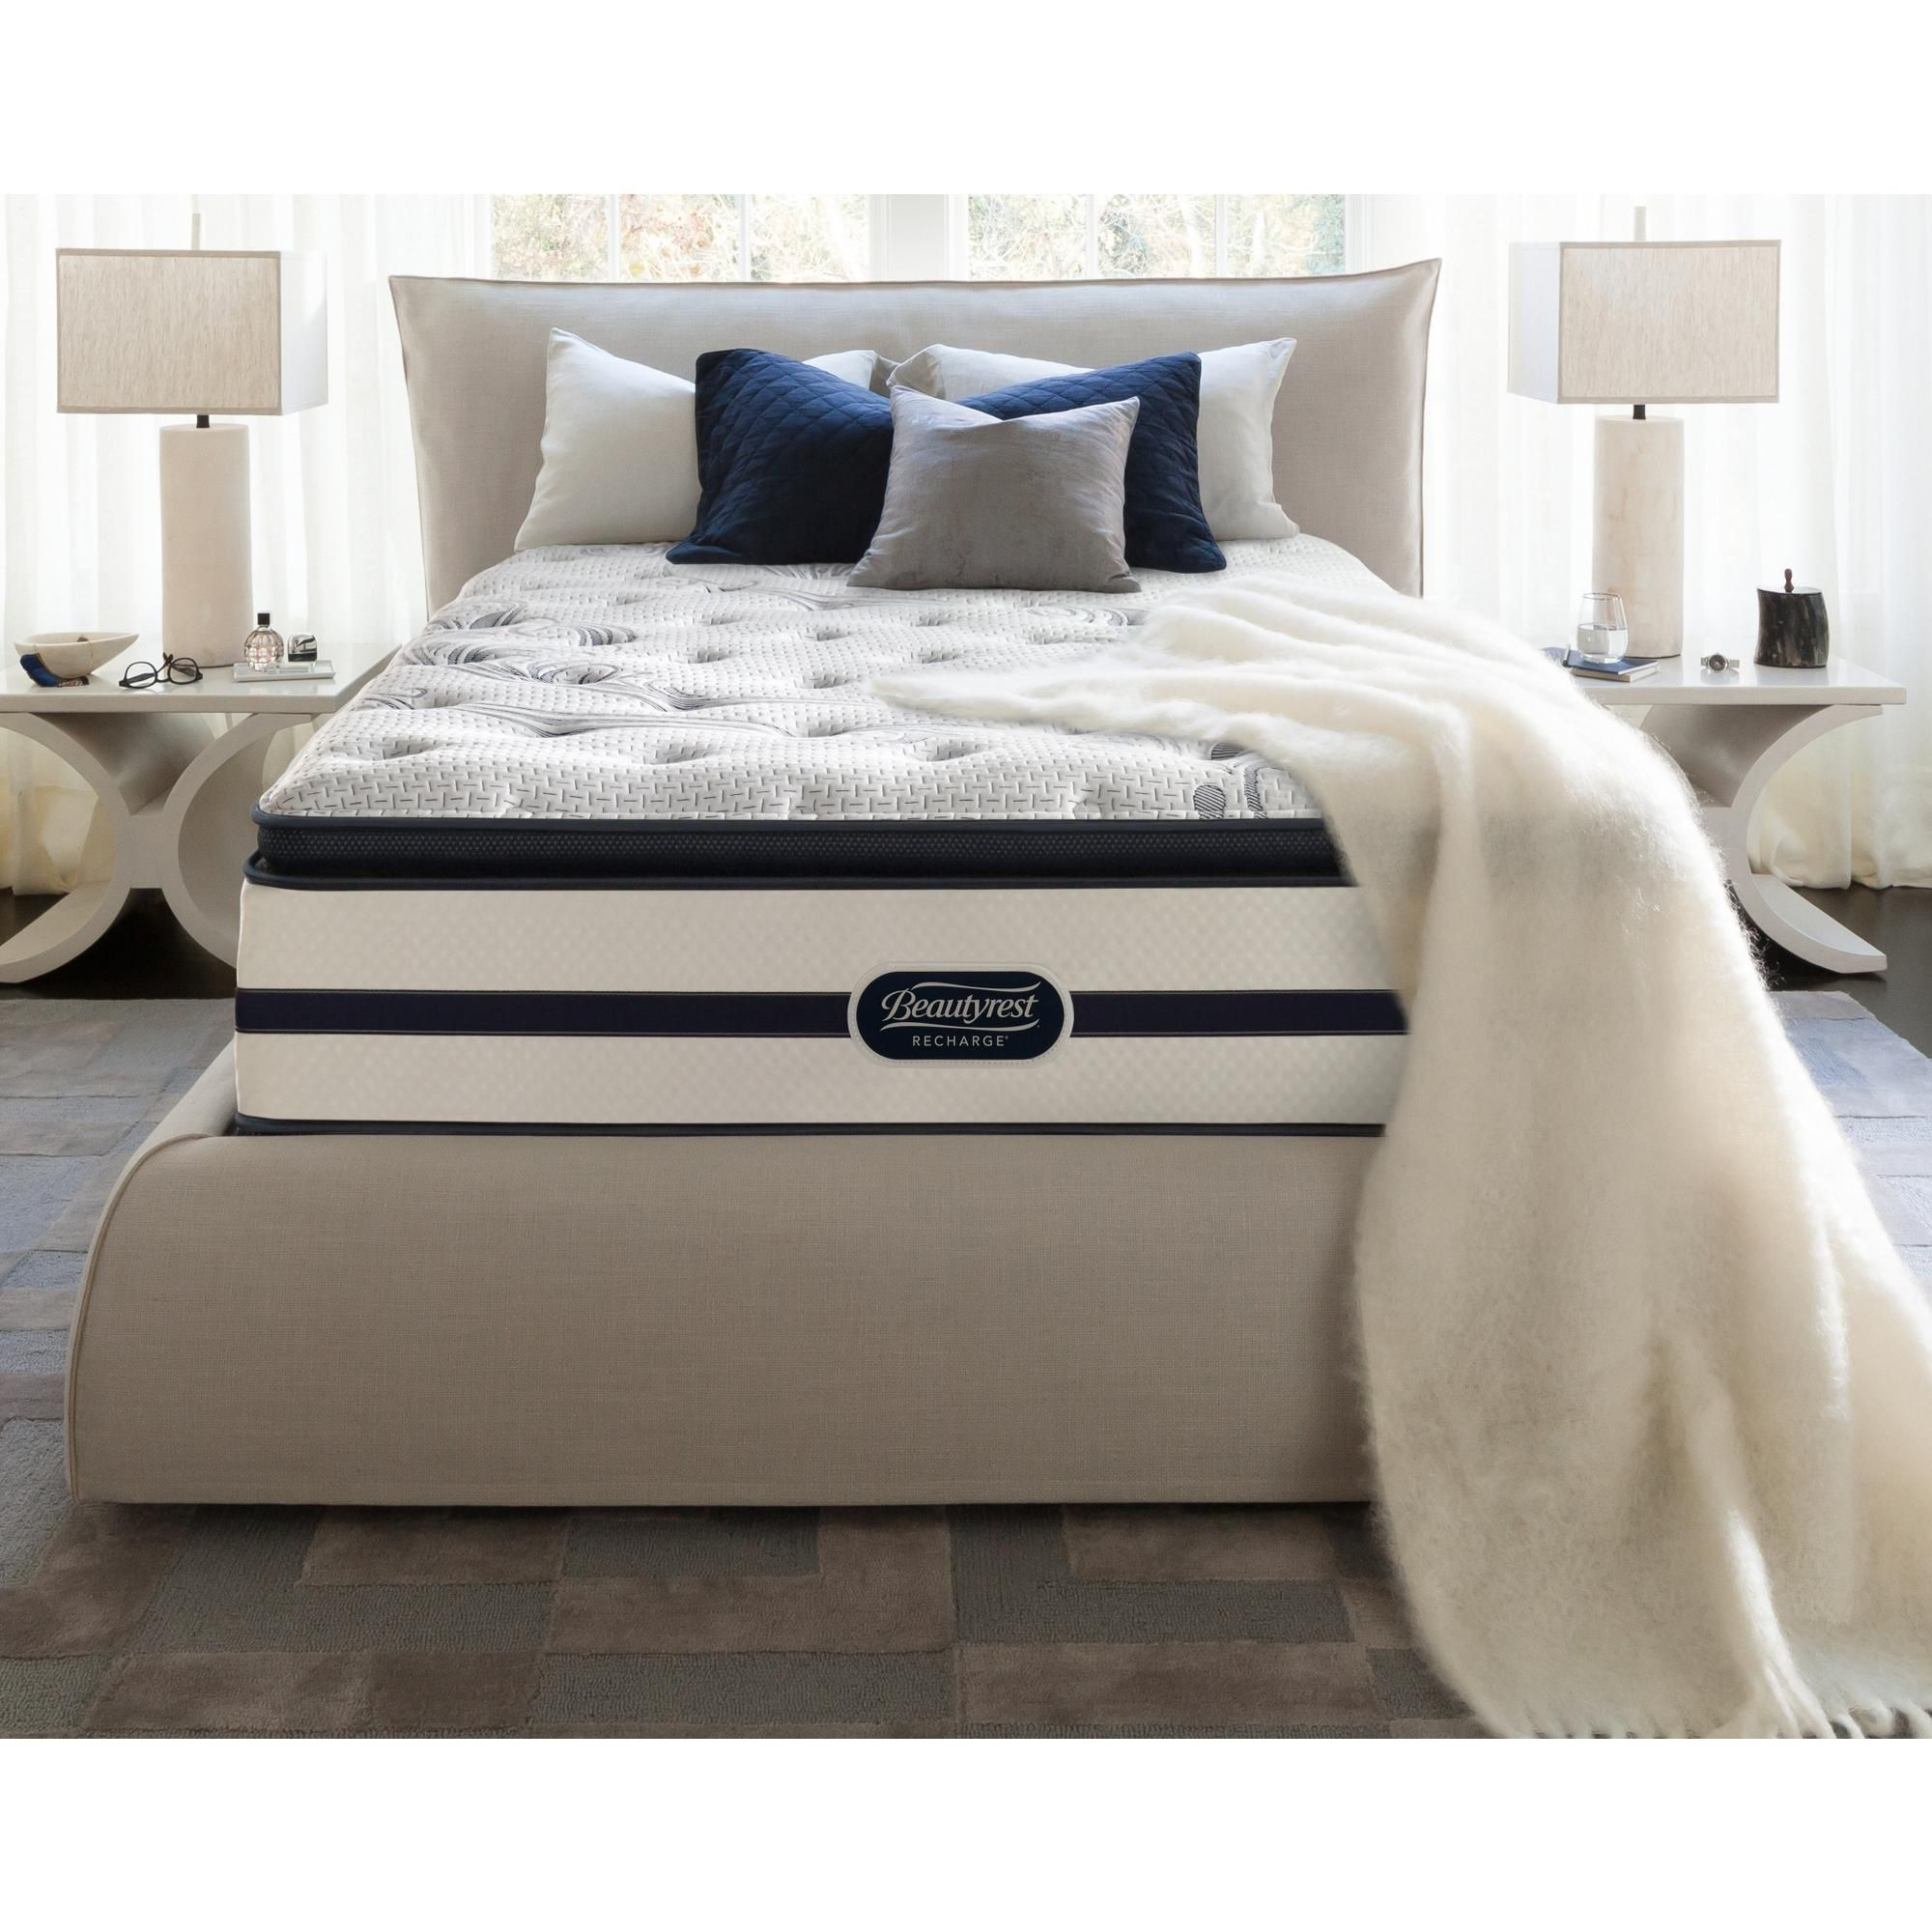 Indulge in a Rejuvenating Sleep on the Beautyrest Recharge